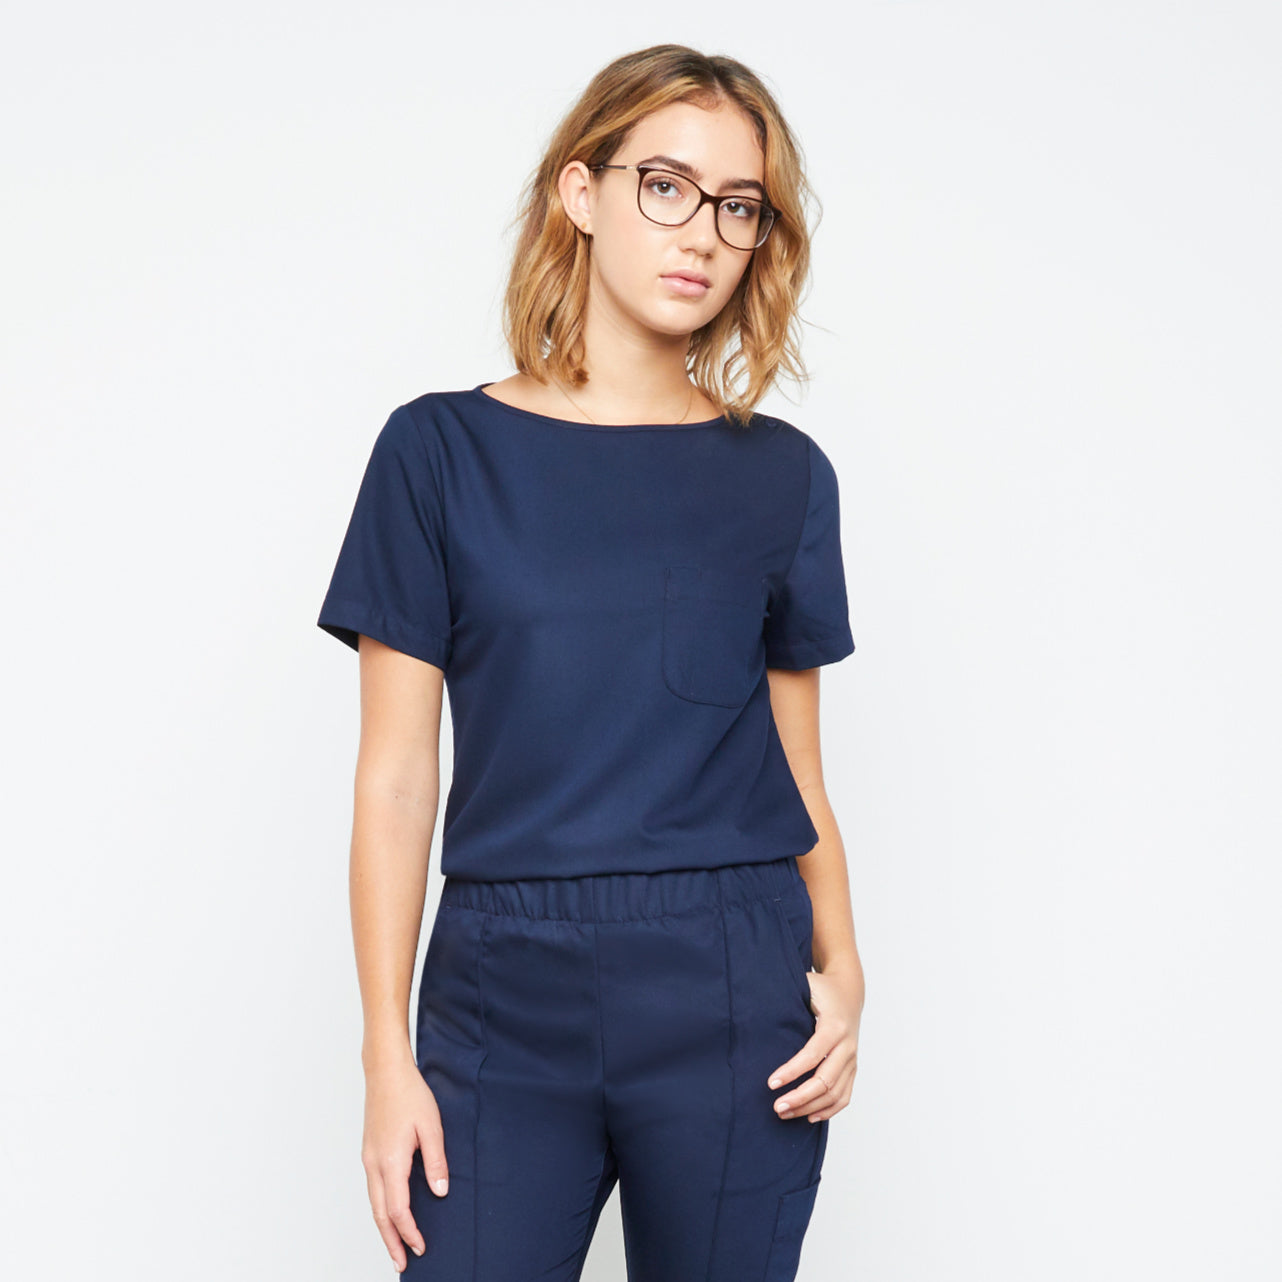 Harley Top (Really Dark Navy) XXS | Fabled makes designer scrub fashions, cute dental scrubs, and cute vet scrubs. All Fabled's cute scrubs made in USA.